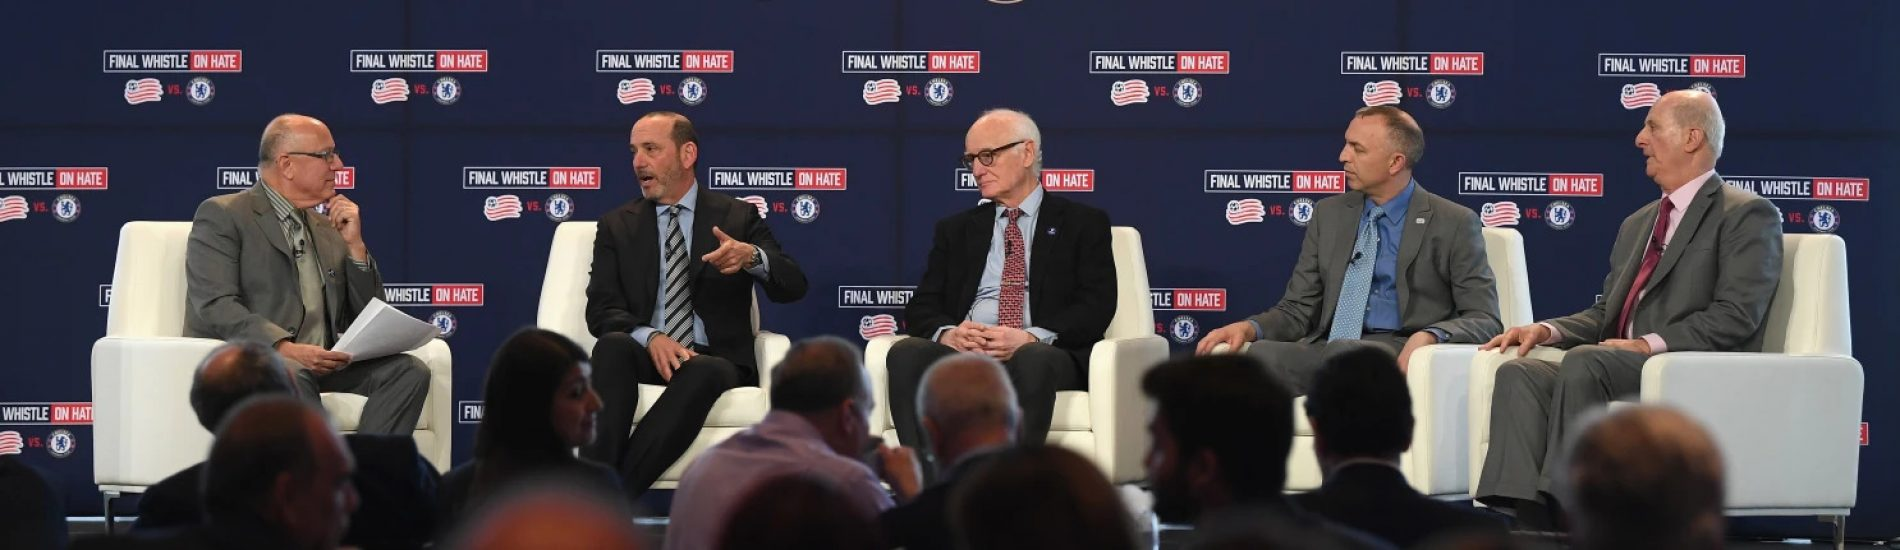 Chelsea and Revolution Representatives Discuss the Power of Sport